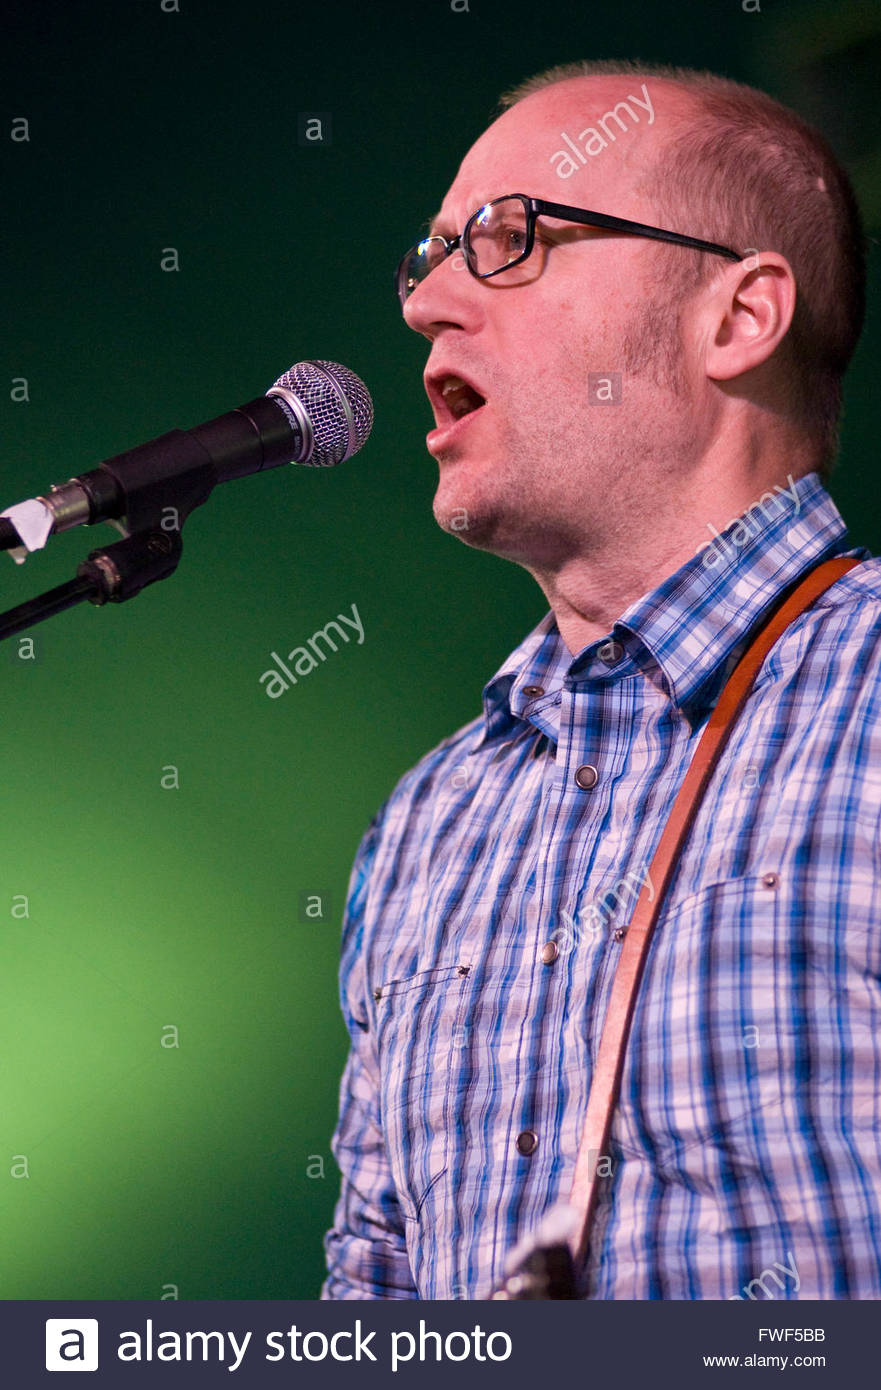 Adrian Edmondson, lead singer performing with the Bad Shepherds at the Wychwood Festival, UK, 30 May 2009. - Stock Image